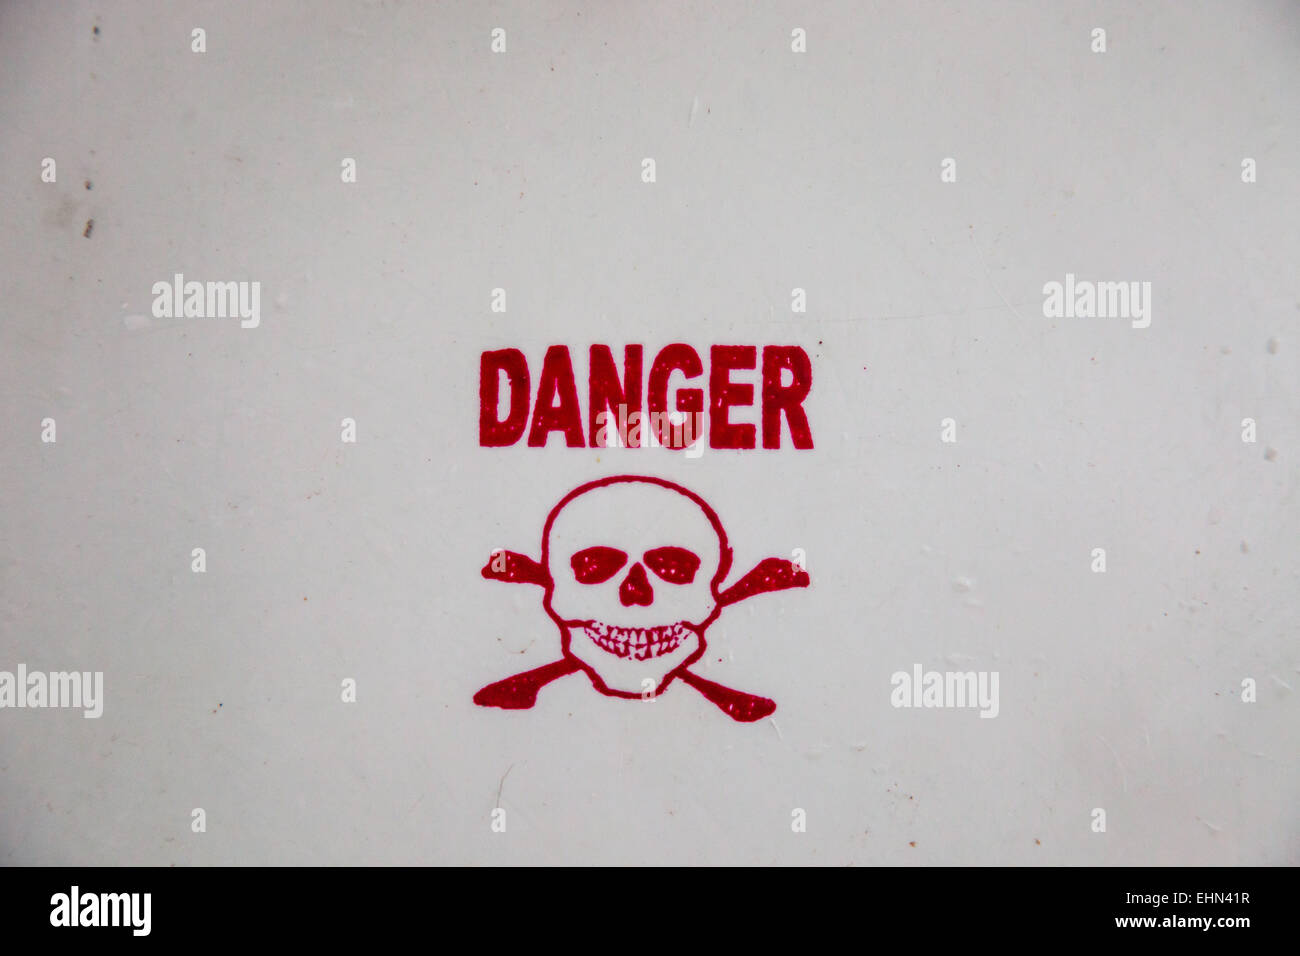 Panel danger. - Stock Image